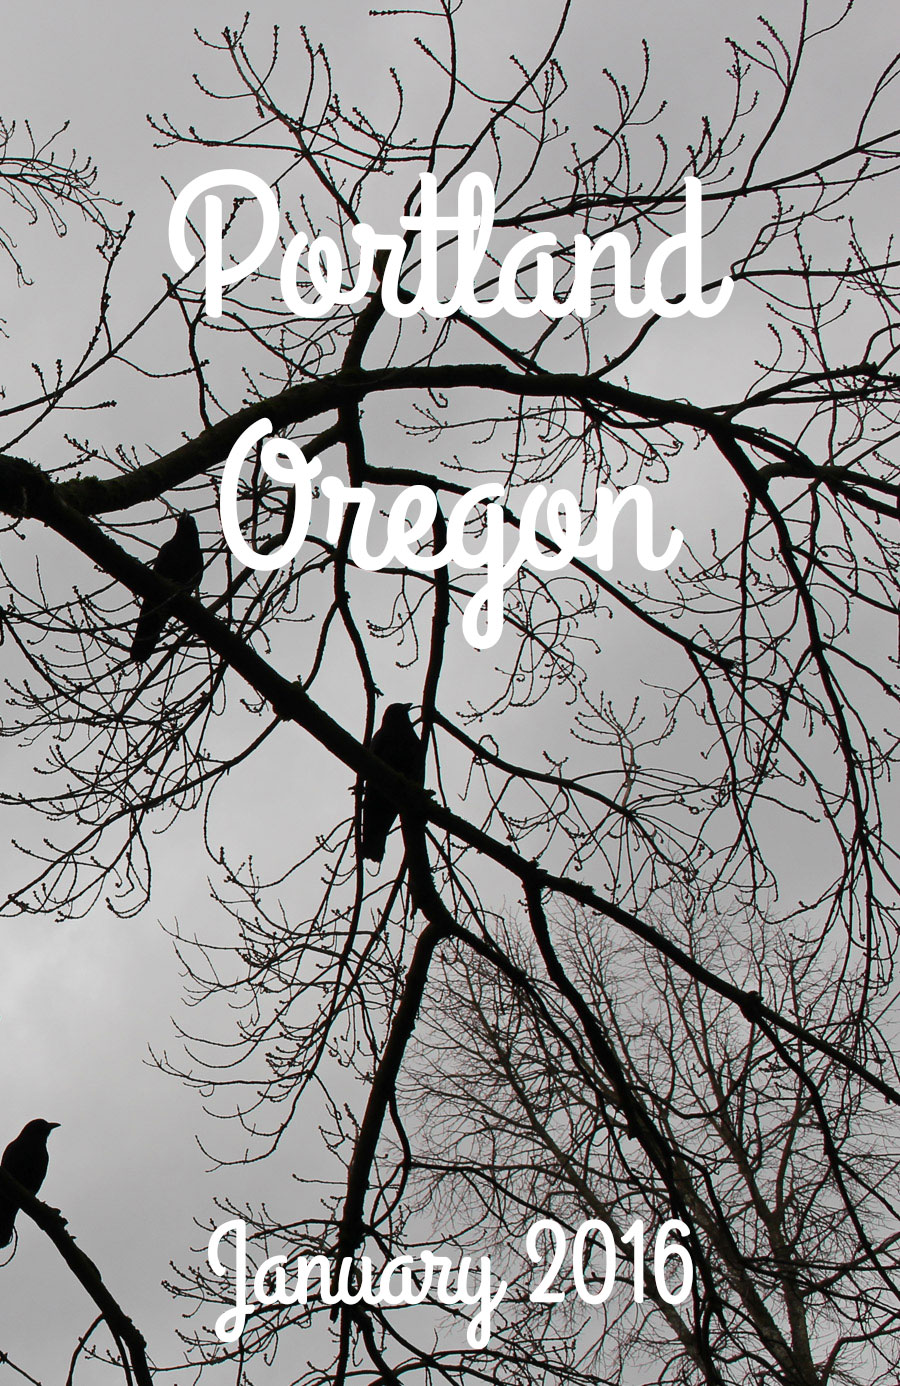 A 3 day trip to Portland Oregon in January, it was AWESOME.